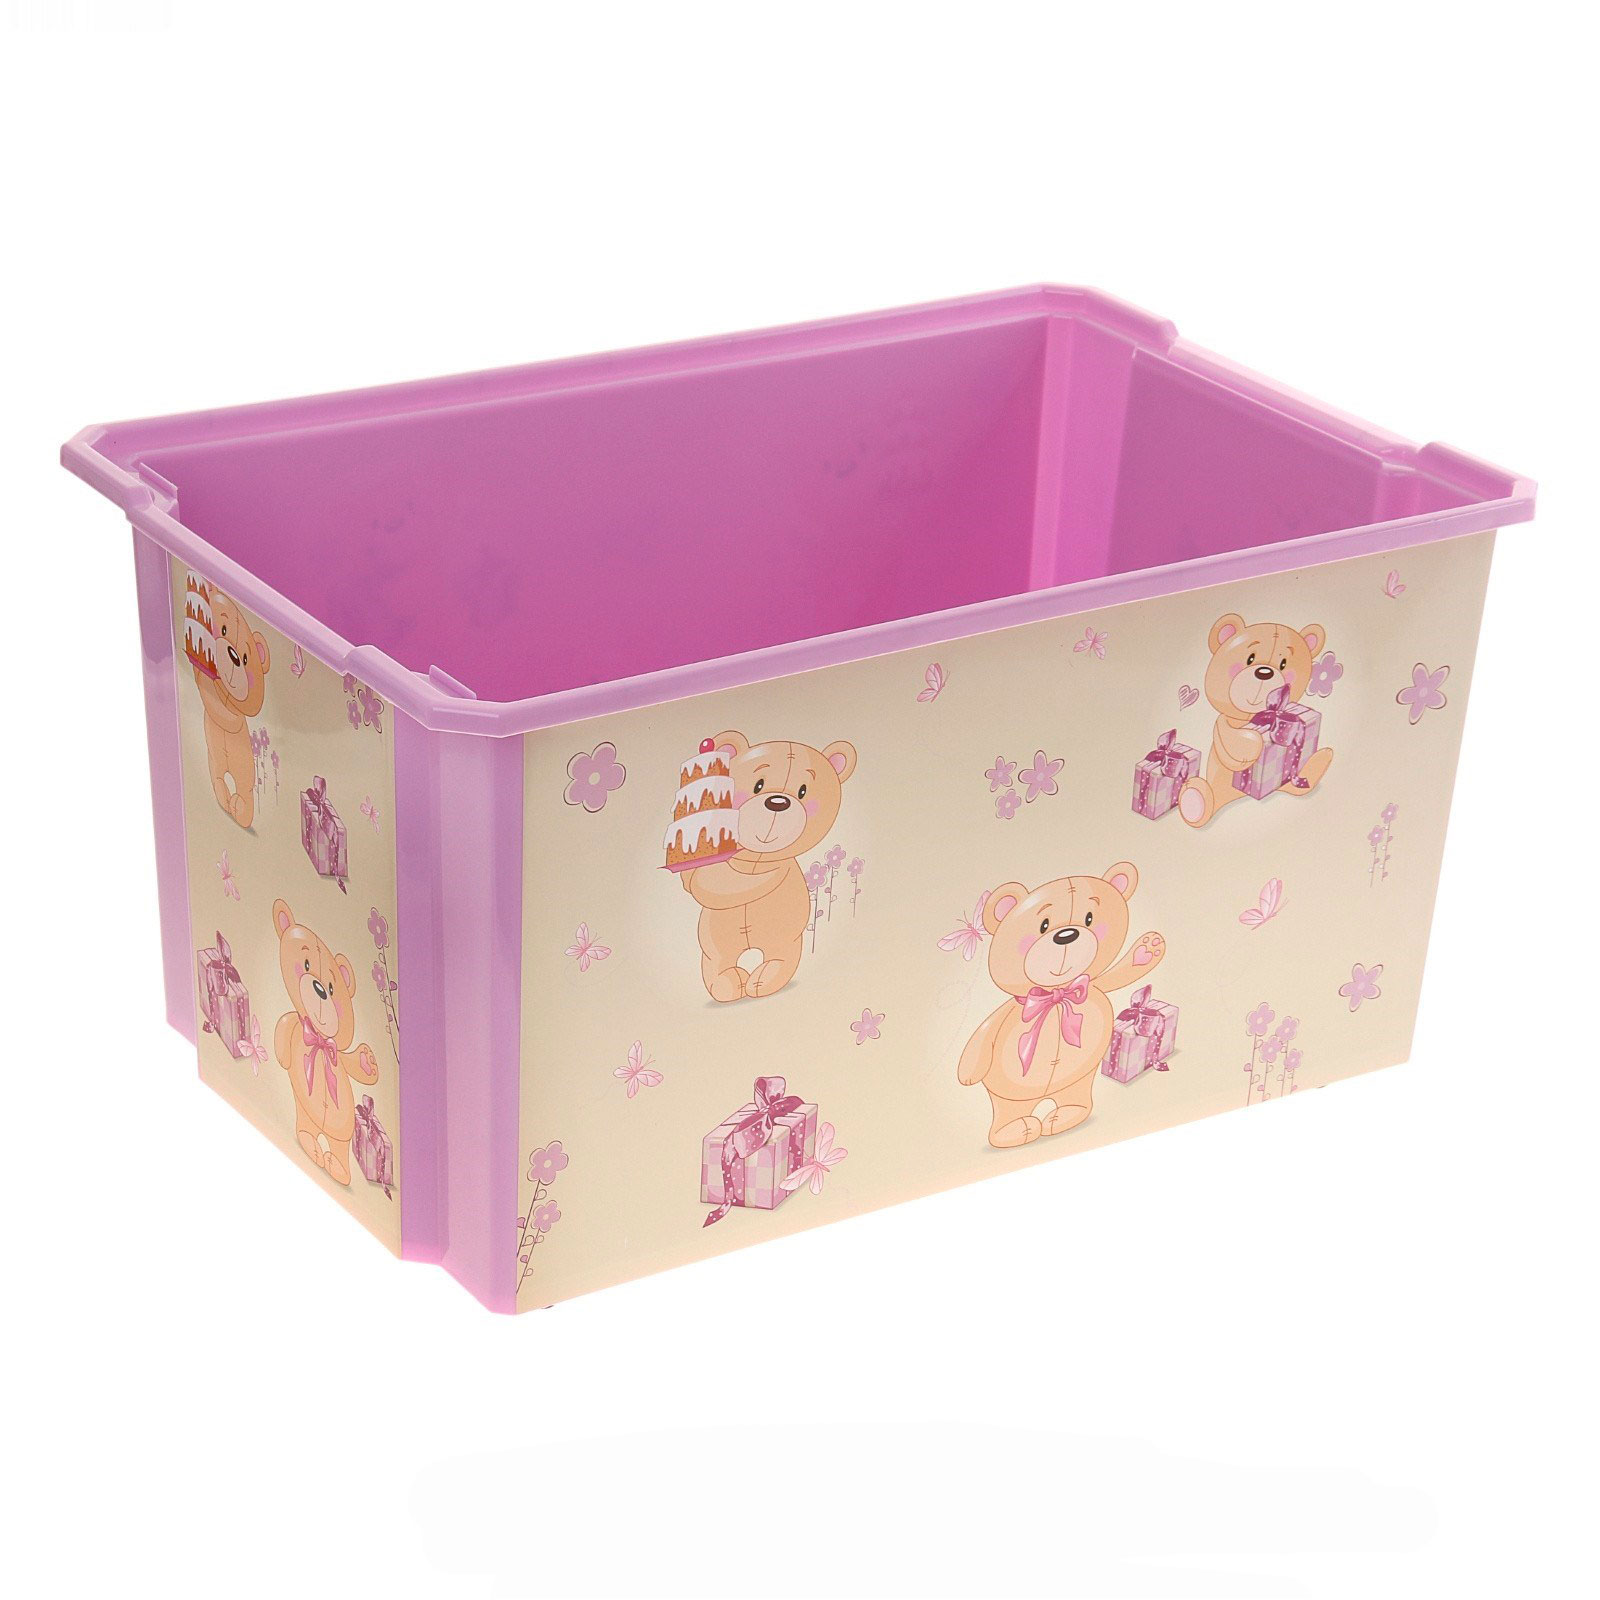 ���� ��� �������� ������� Little Angel X-Box Bears 57� �� ������� ������� � �������